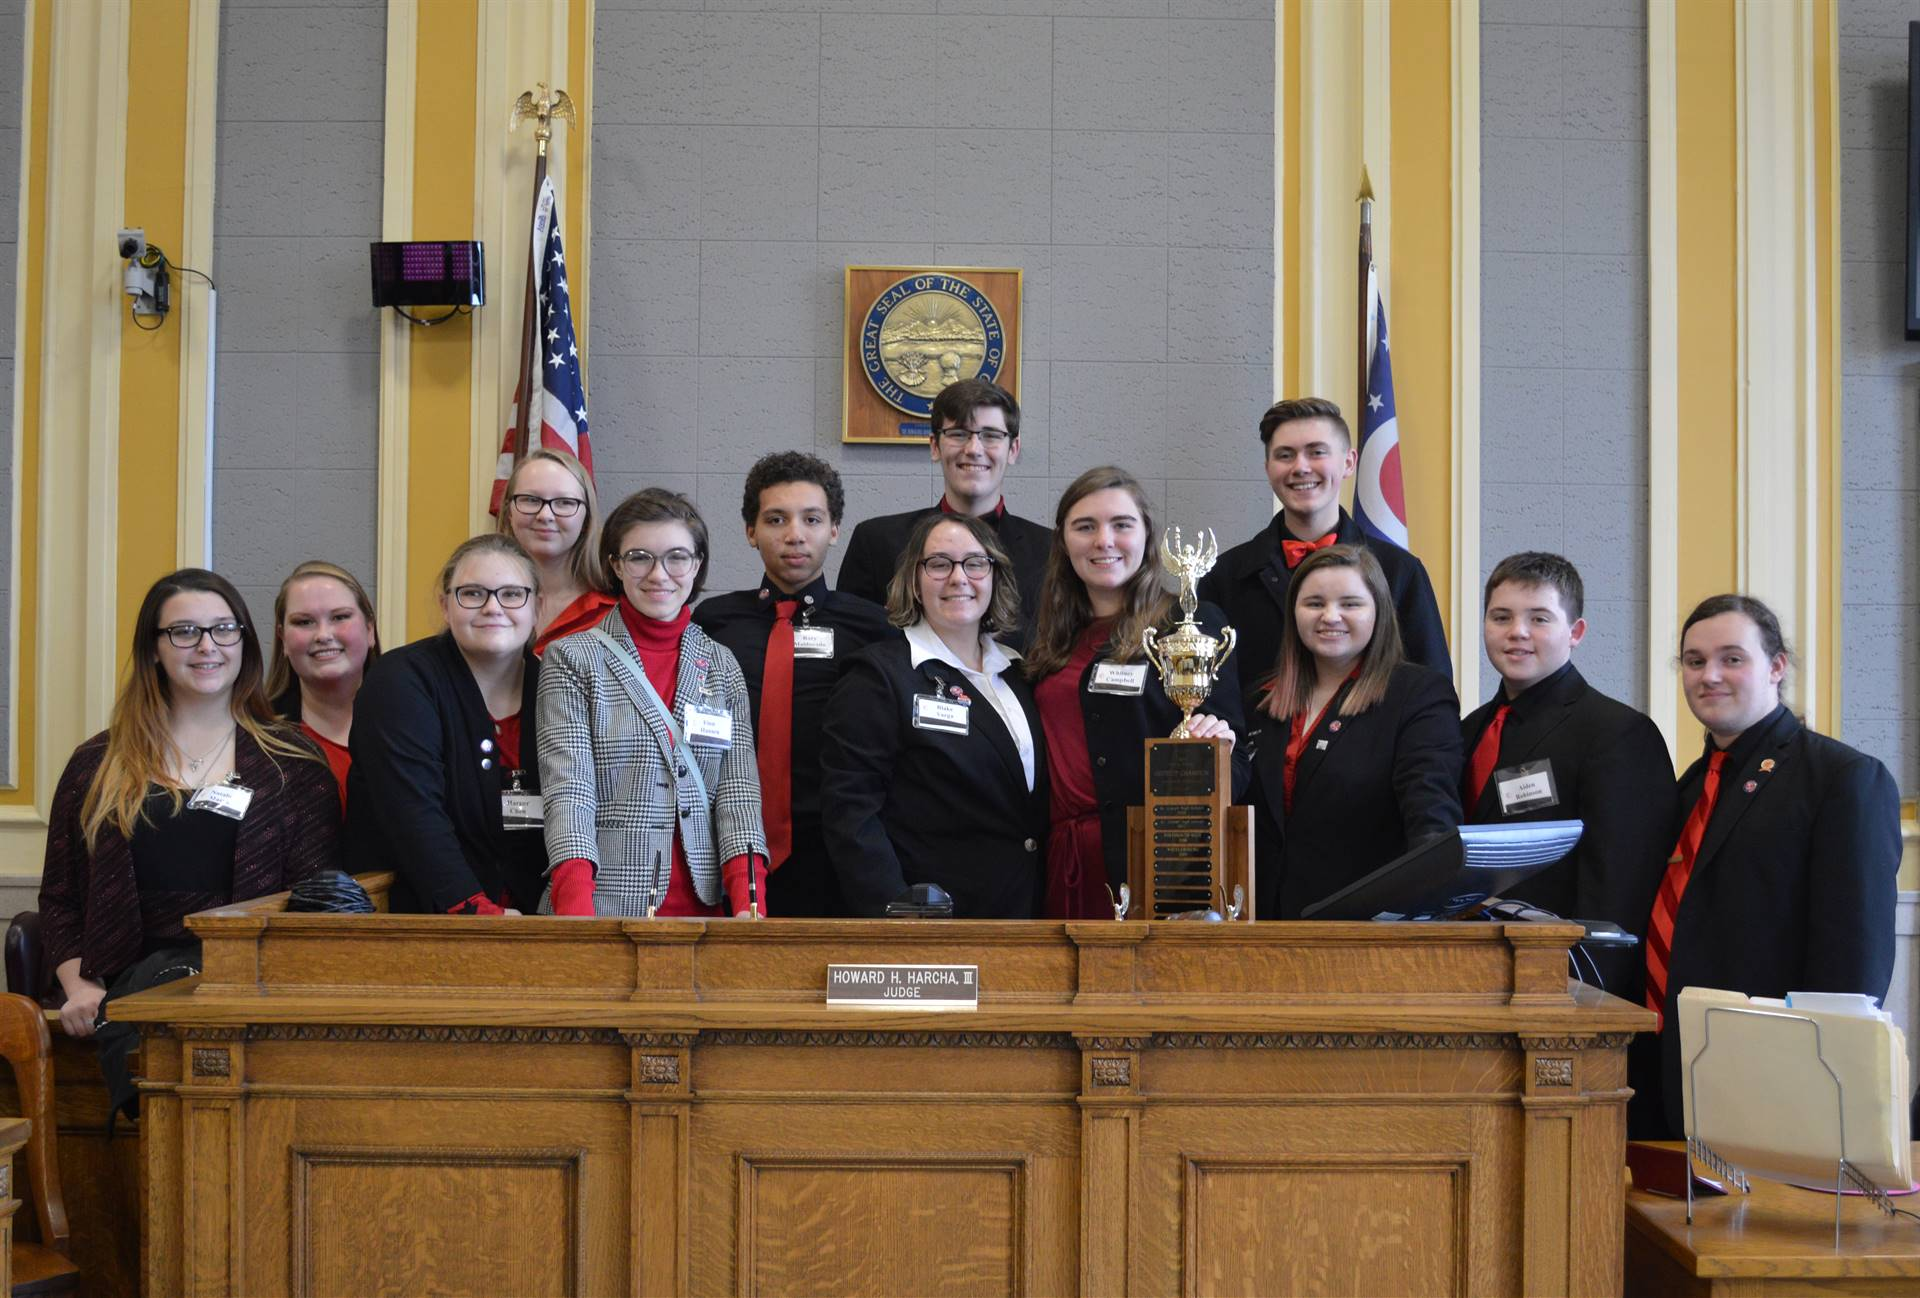 2020 District Mock Trial Champions